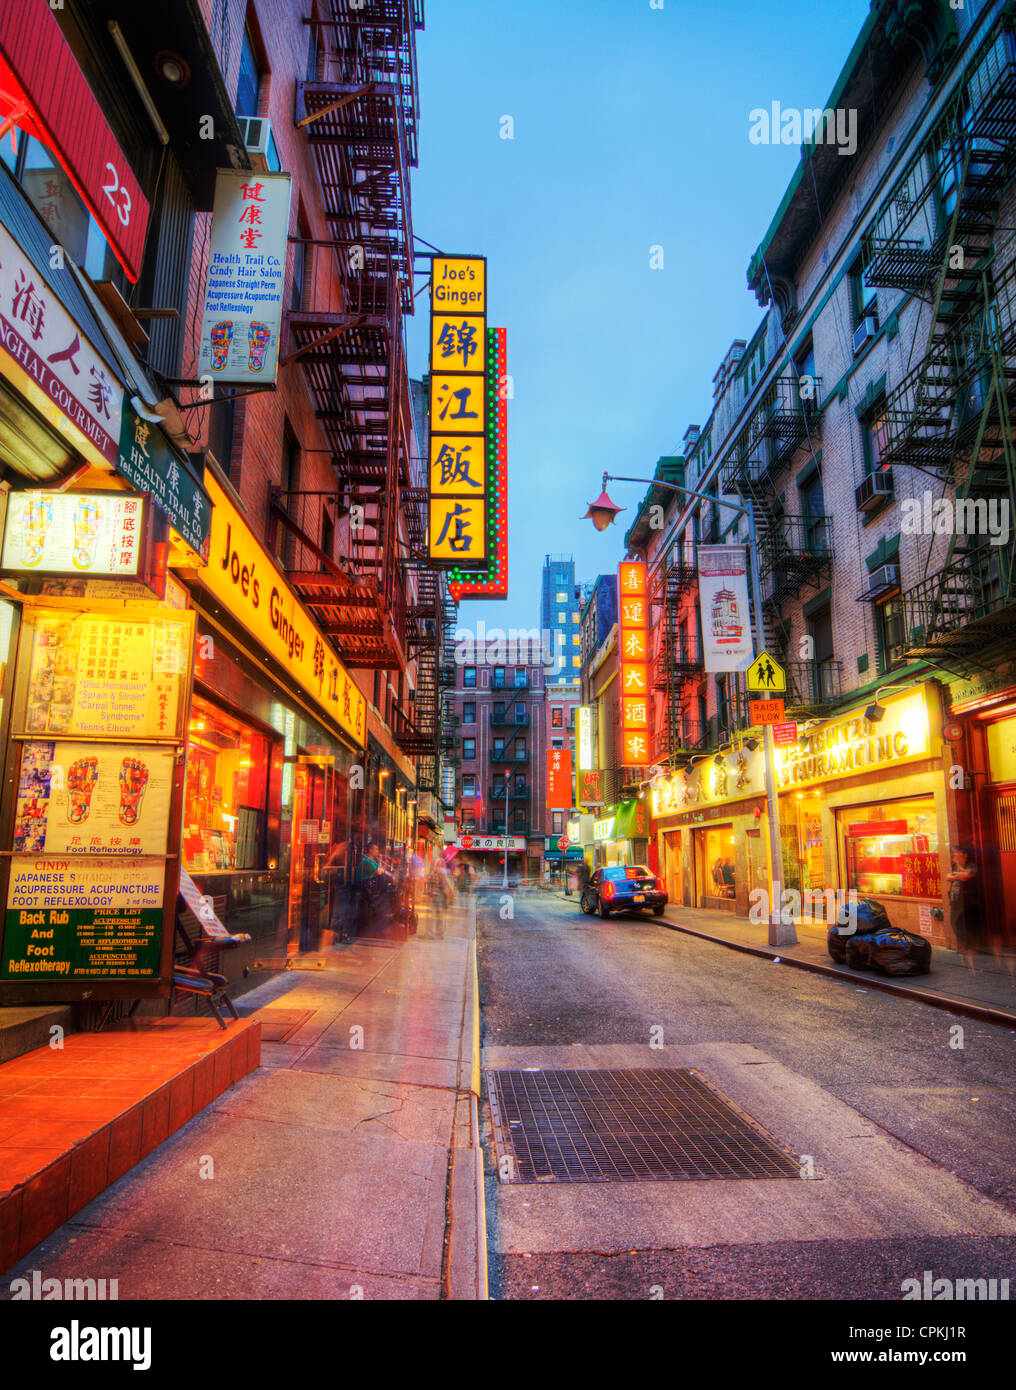 mise en scene of chinatown Choose the right synonym for mise-en-scène background , setting , environment , milieu , mise-en-scène mean the place, time, and circumstances in which something occurs background often refers to the circumstances or events that precede a phenomenon or development.